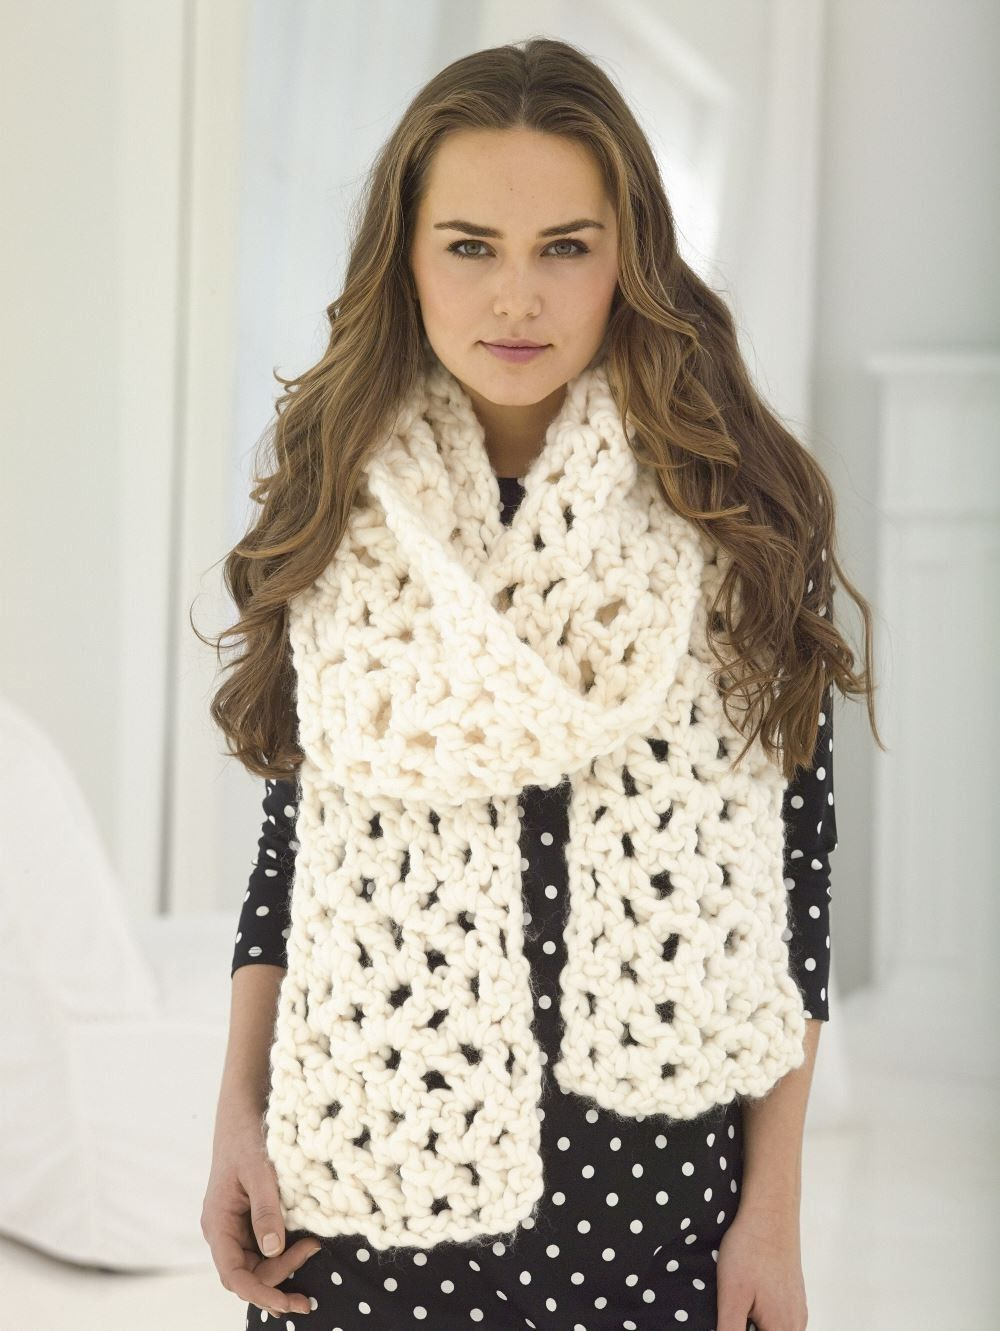 V-Stitch Scarf (Crochet) | Crochet | Pinterest | Croché, Tejidos and ...